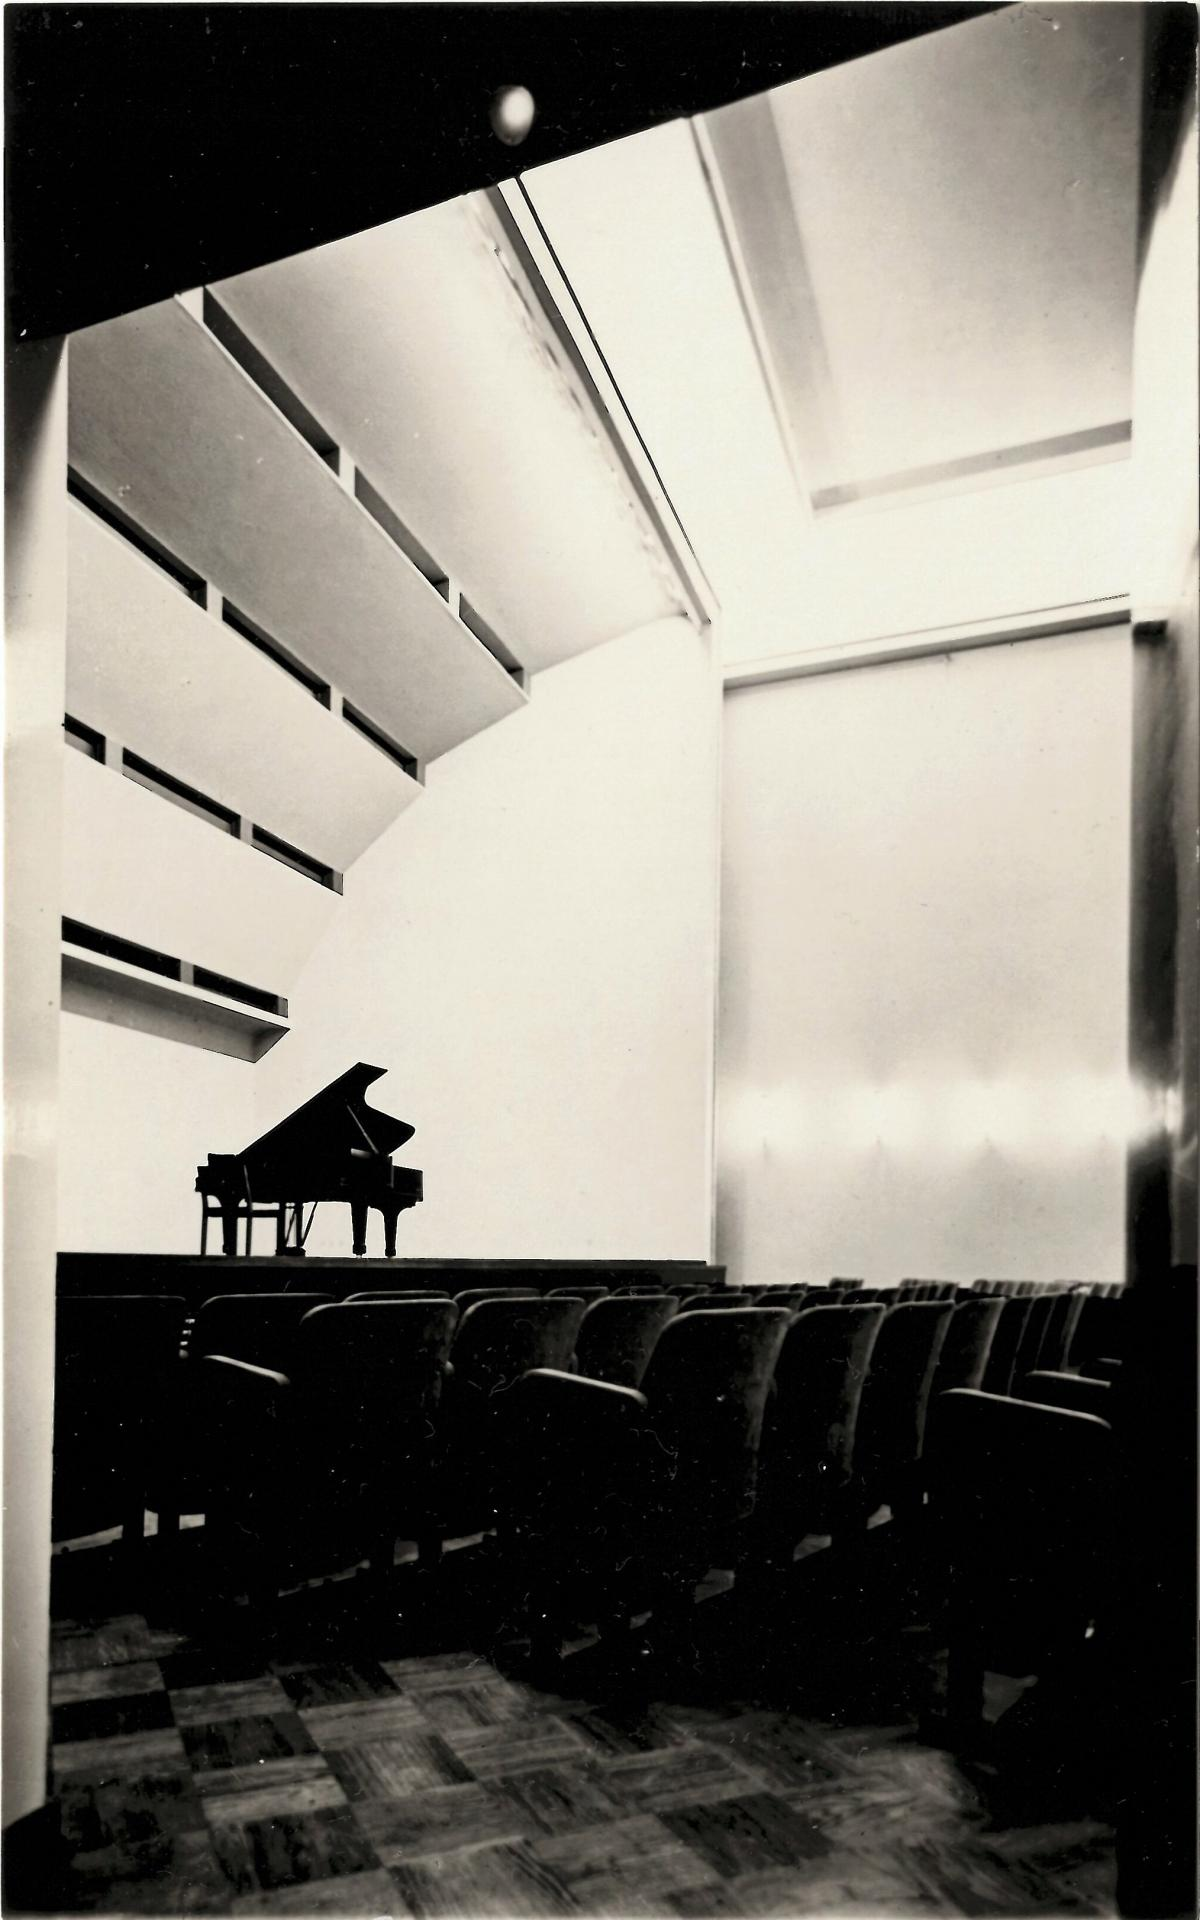 The concert hall stage and the original roof structure. The sheets on the ceiling serve as acoustic elements, and the future organ was meant to be hidden behind them. However, they were dismantled in connection with the construction of the organs in 1939 and the organ pipes were left visible.